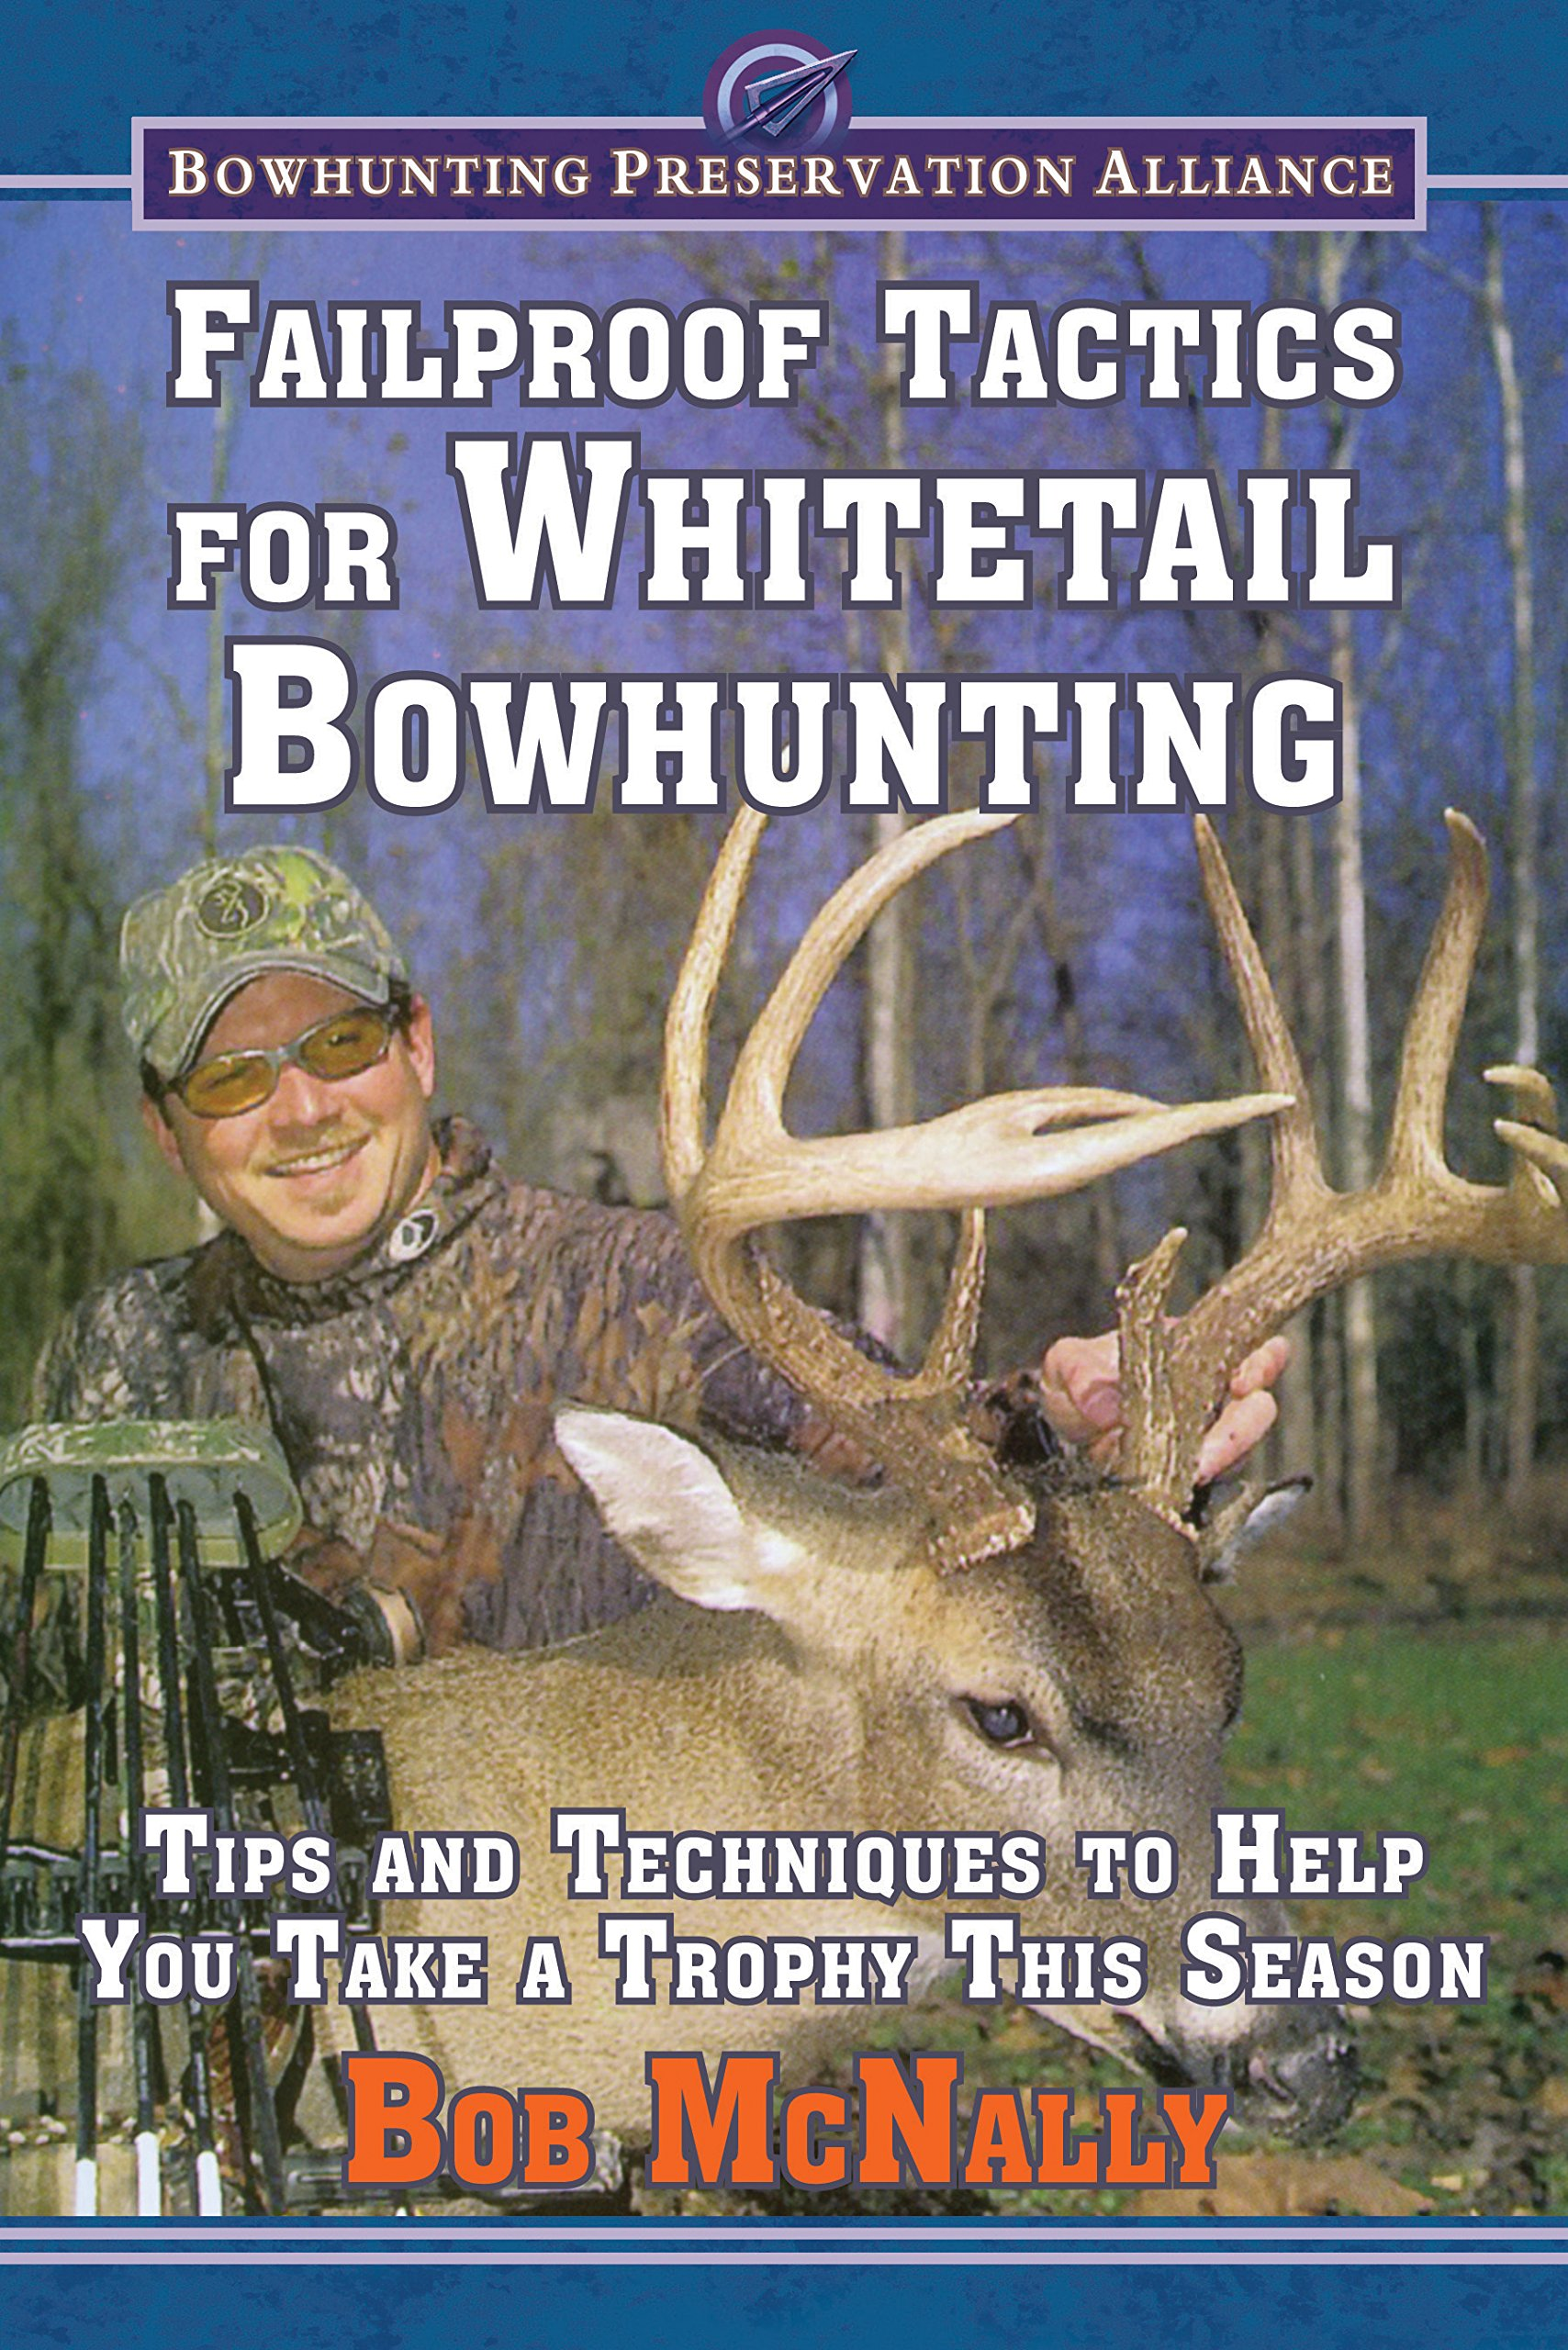 Read Online Failproof Tactics for Whitetail Bowhunting: Tips and Techniques to Help You Take a Trophy This Season (Bowhunting Preservation Alliance) pdf